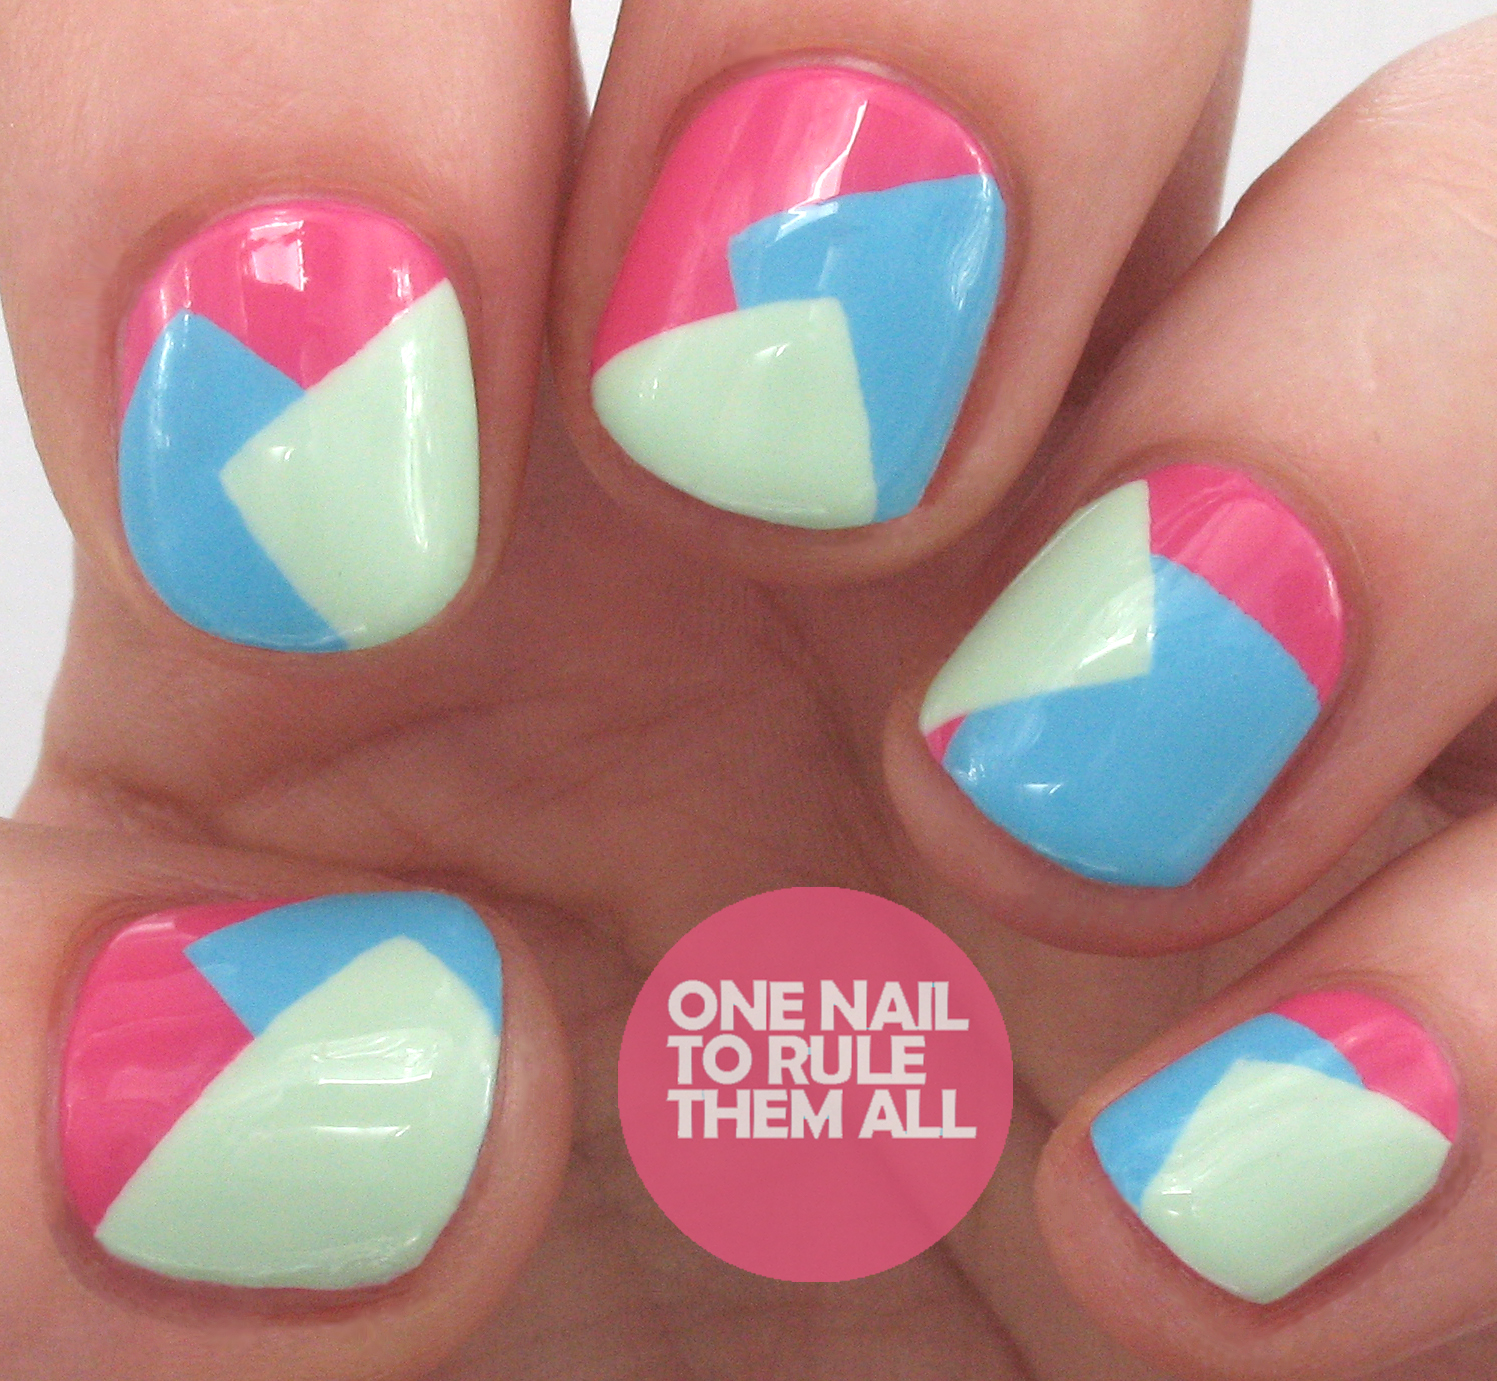 One Nail To Rule Them All Barry M Nail Art Pens Review: One Nail To Rule Them All: Nails Inc. Collaboration With